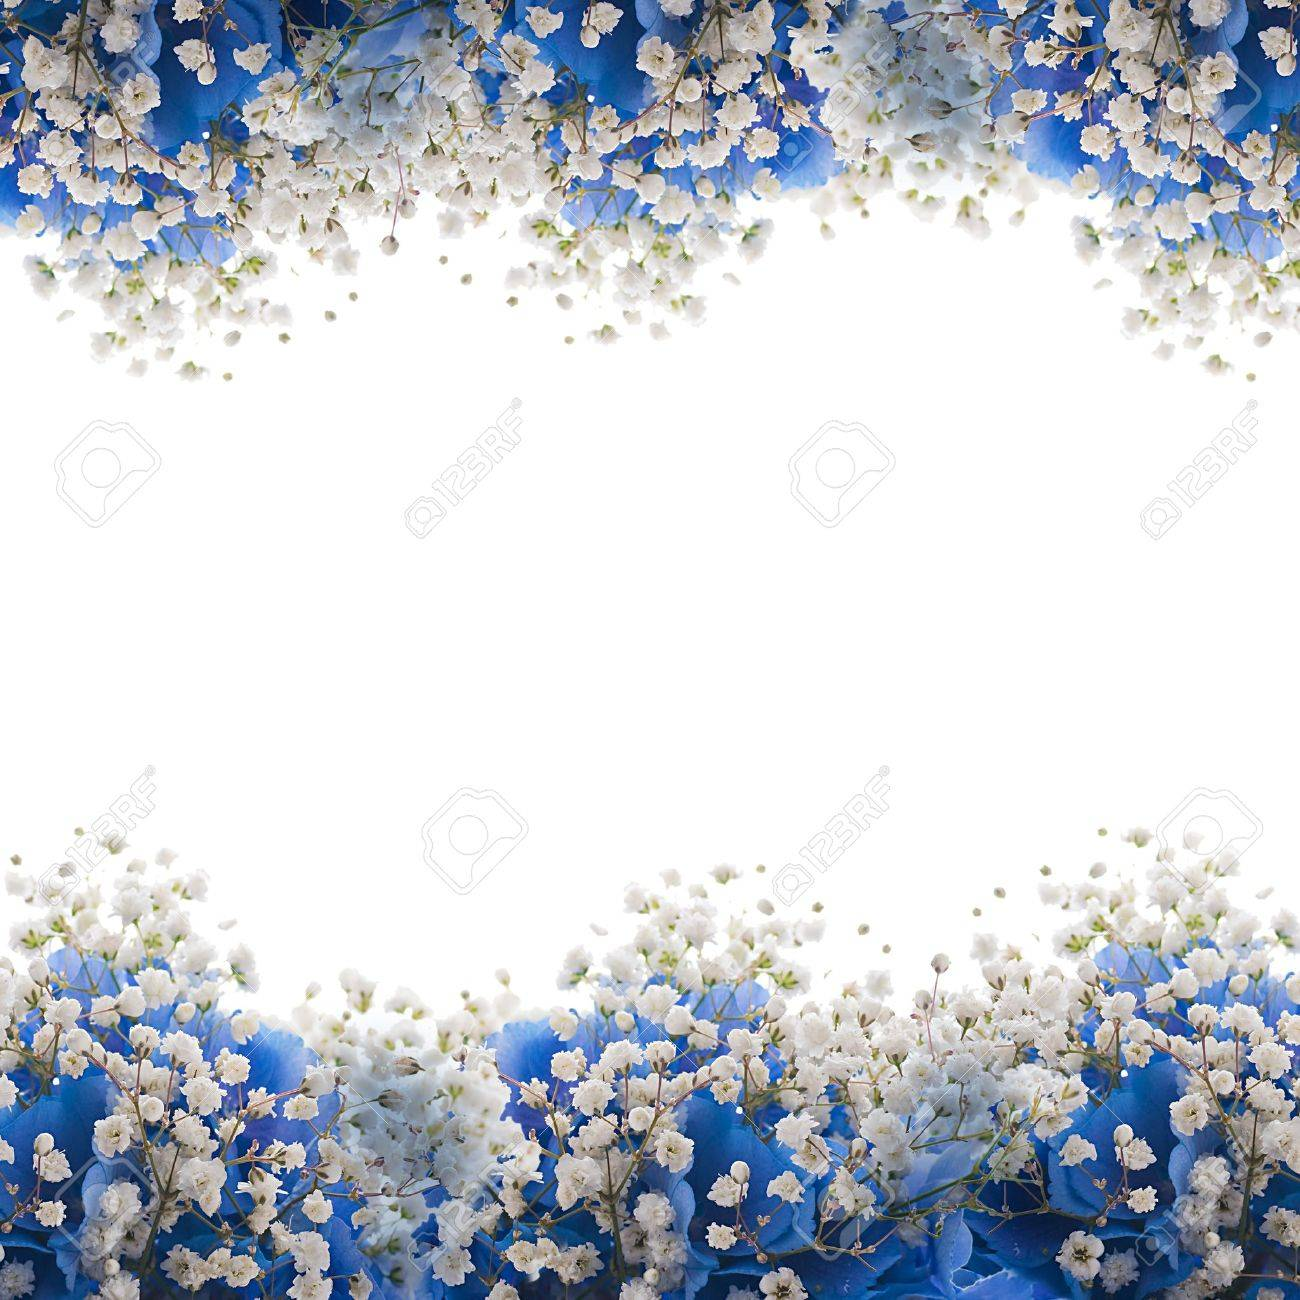 Flowers in a bouquet blue hydrangeas and white flowers stock photo flowers in a bouquet blue hydrangeas and white flowers stock photo 15553299 mightylinksfo